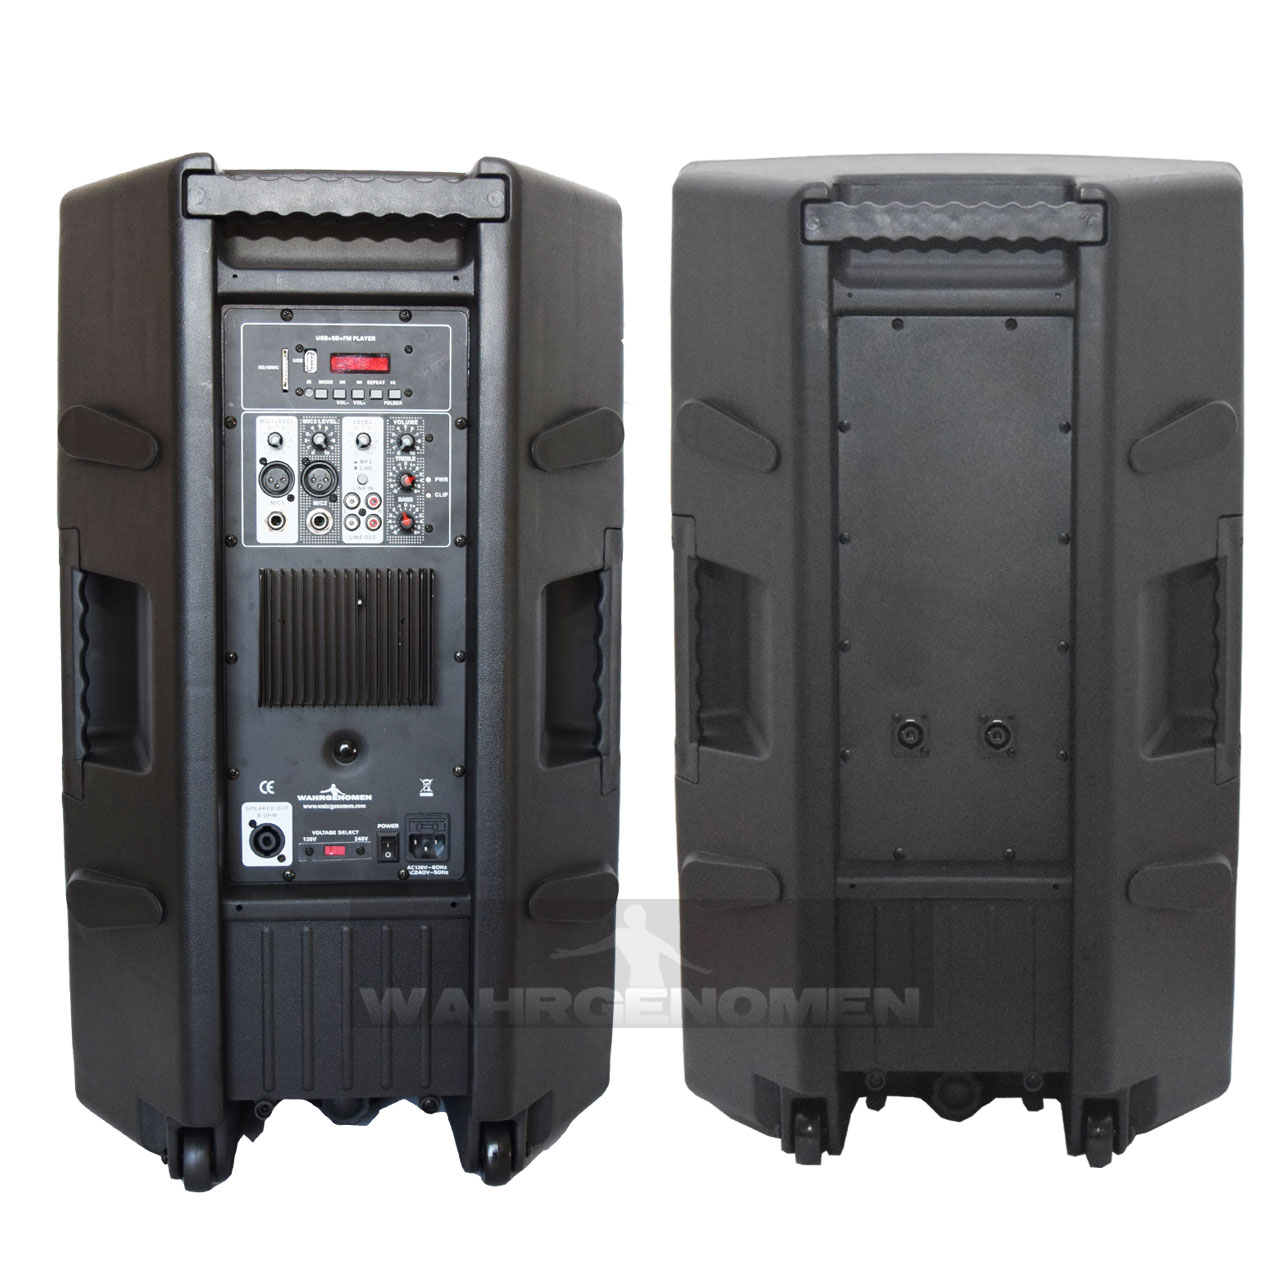 COMBO JWH516 Combo Bafle amplificado mas pasivo 15 + cables, con Bluetooth USB/SD back